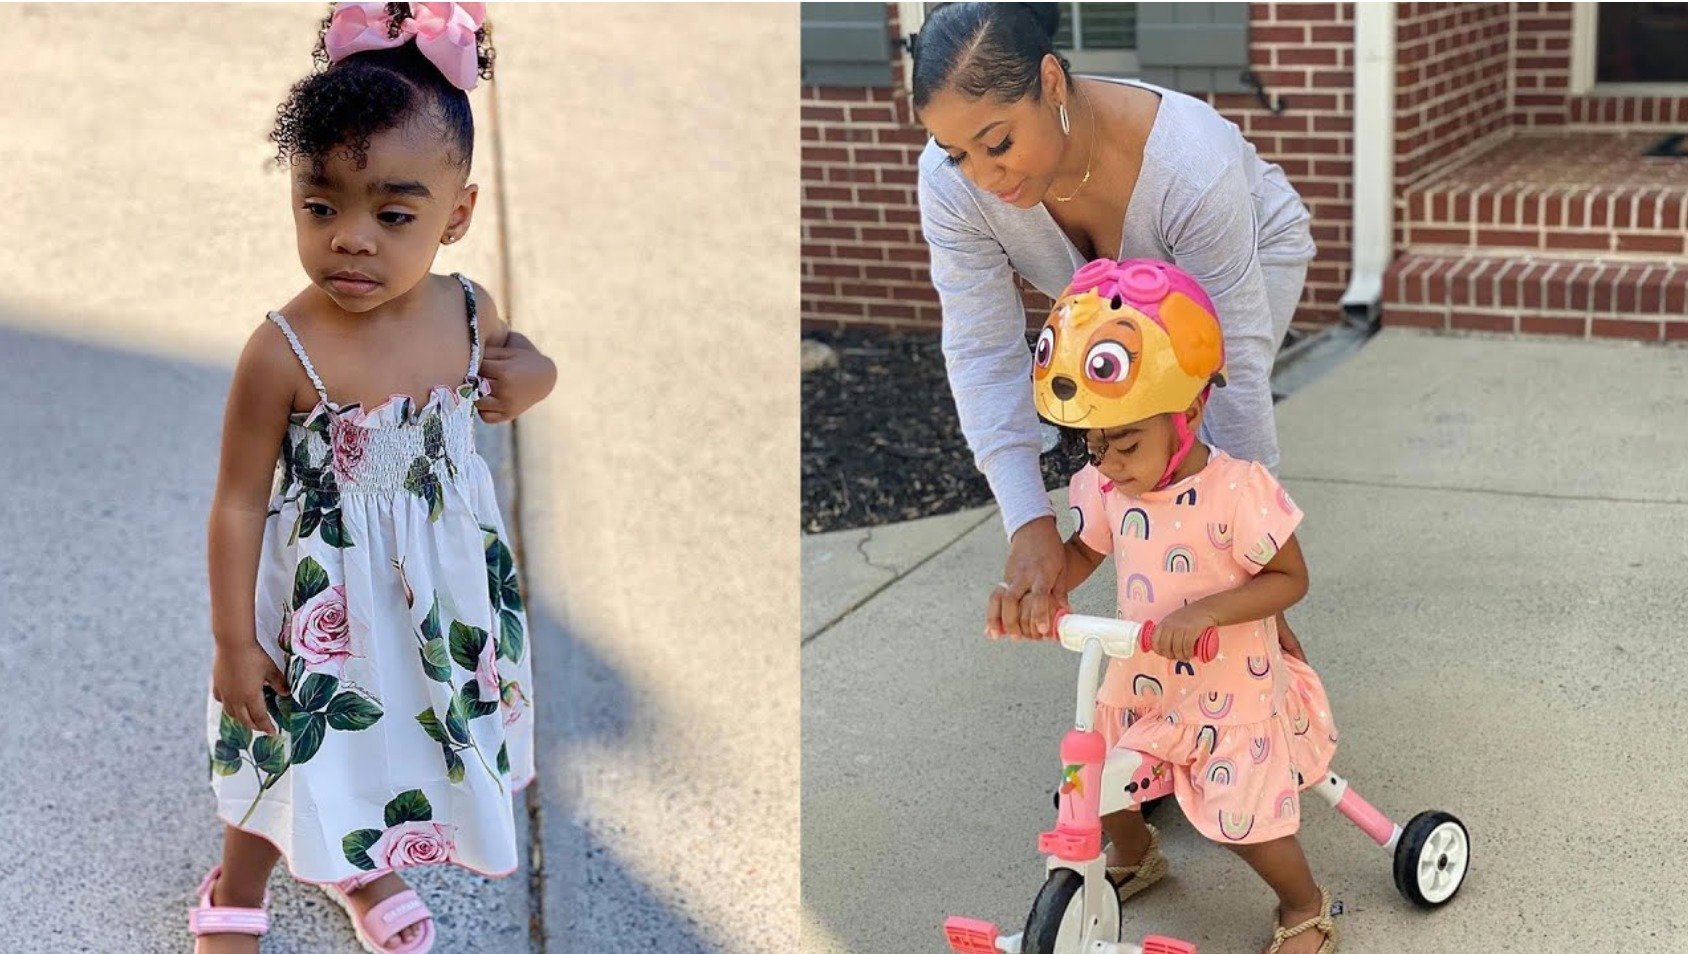 Toya Johnson Shares New Clips Featuring Baby Reign Rushing And Makes Fans Smile – Watch Them Here